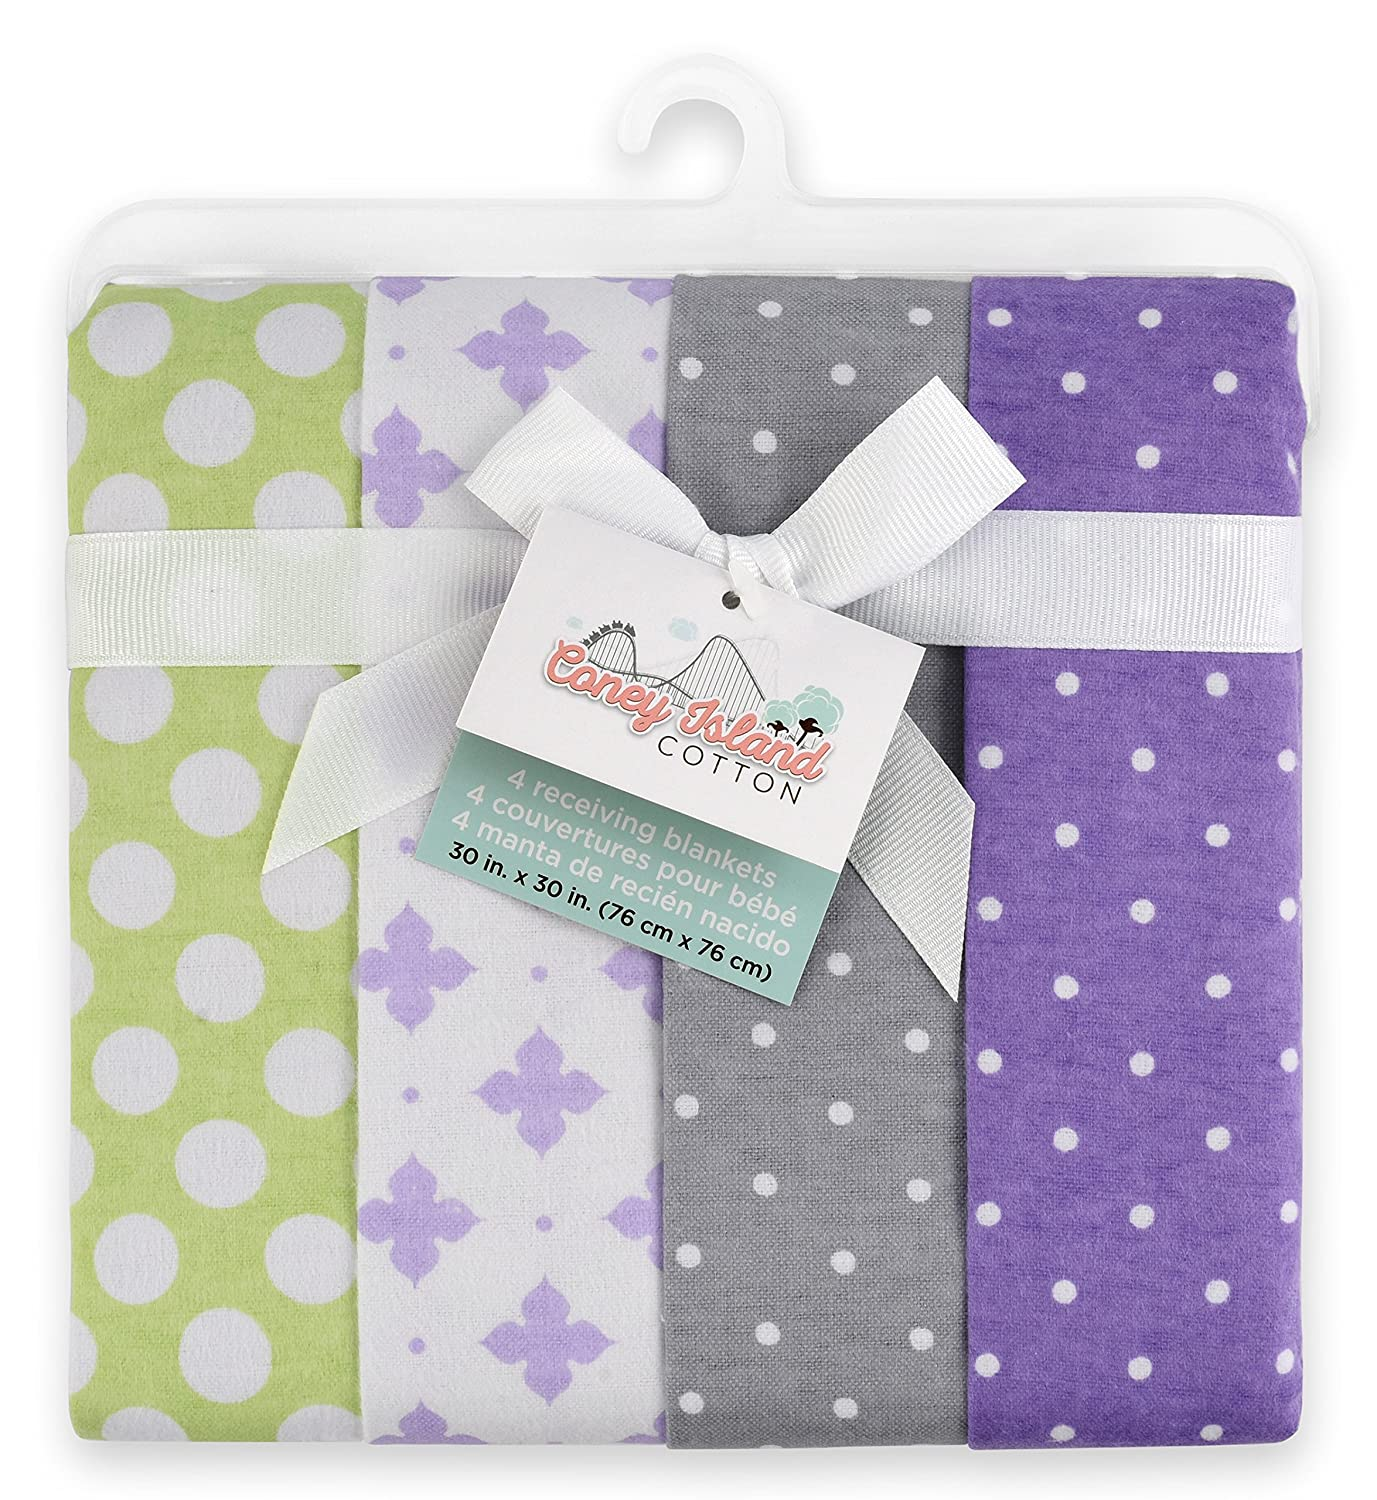 Coney Island Cotton | Flannel Receiving Blankets For Babies | 4 Pack Superior Cotton Burp Cloths |...